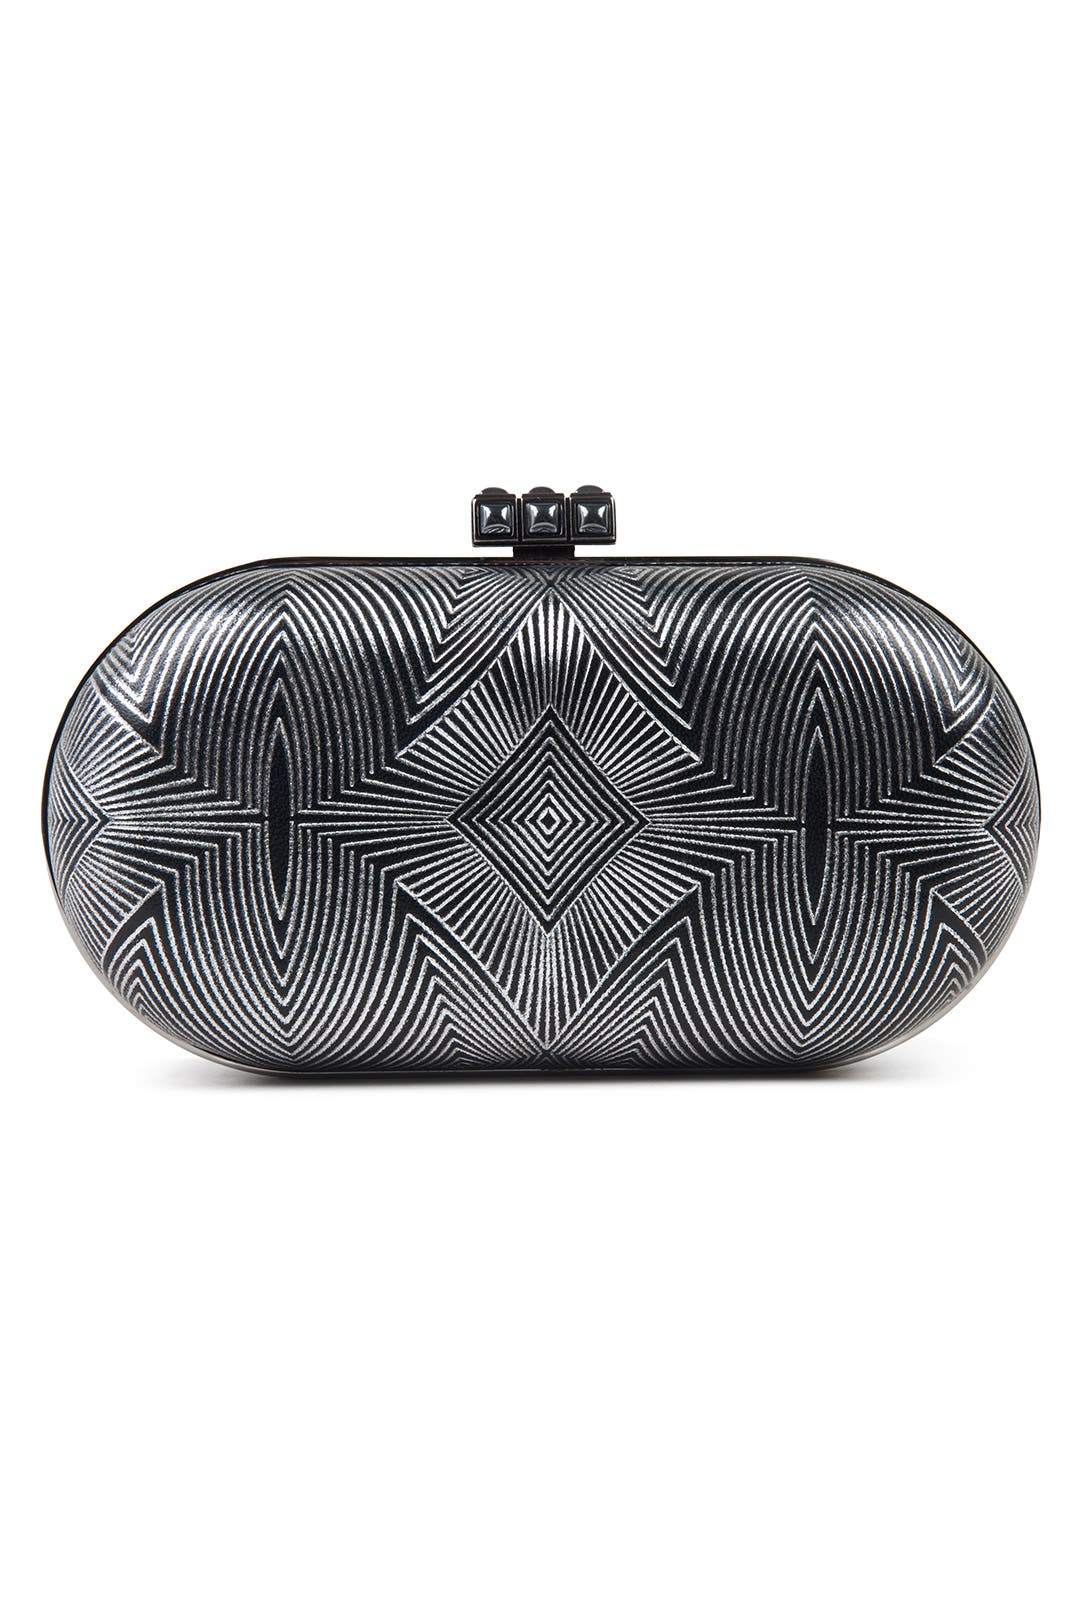 Dreamweaver Clutch by Judith Leiber